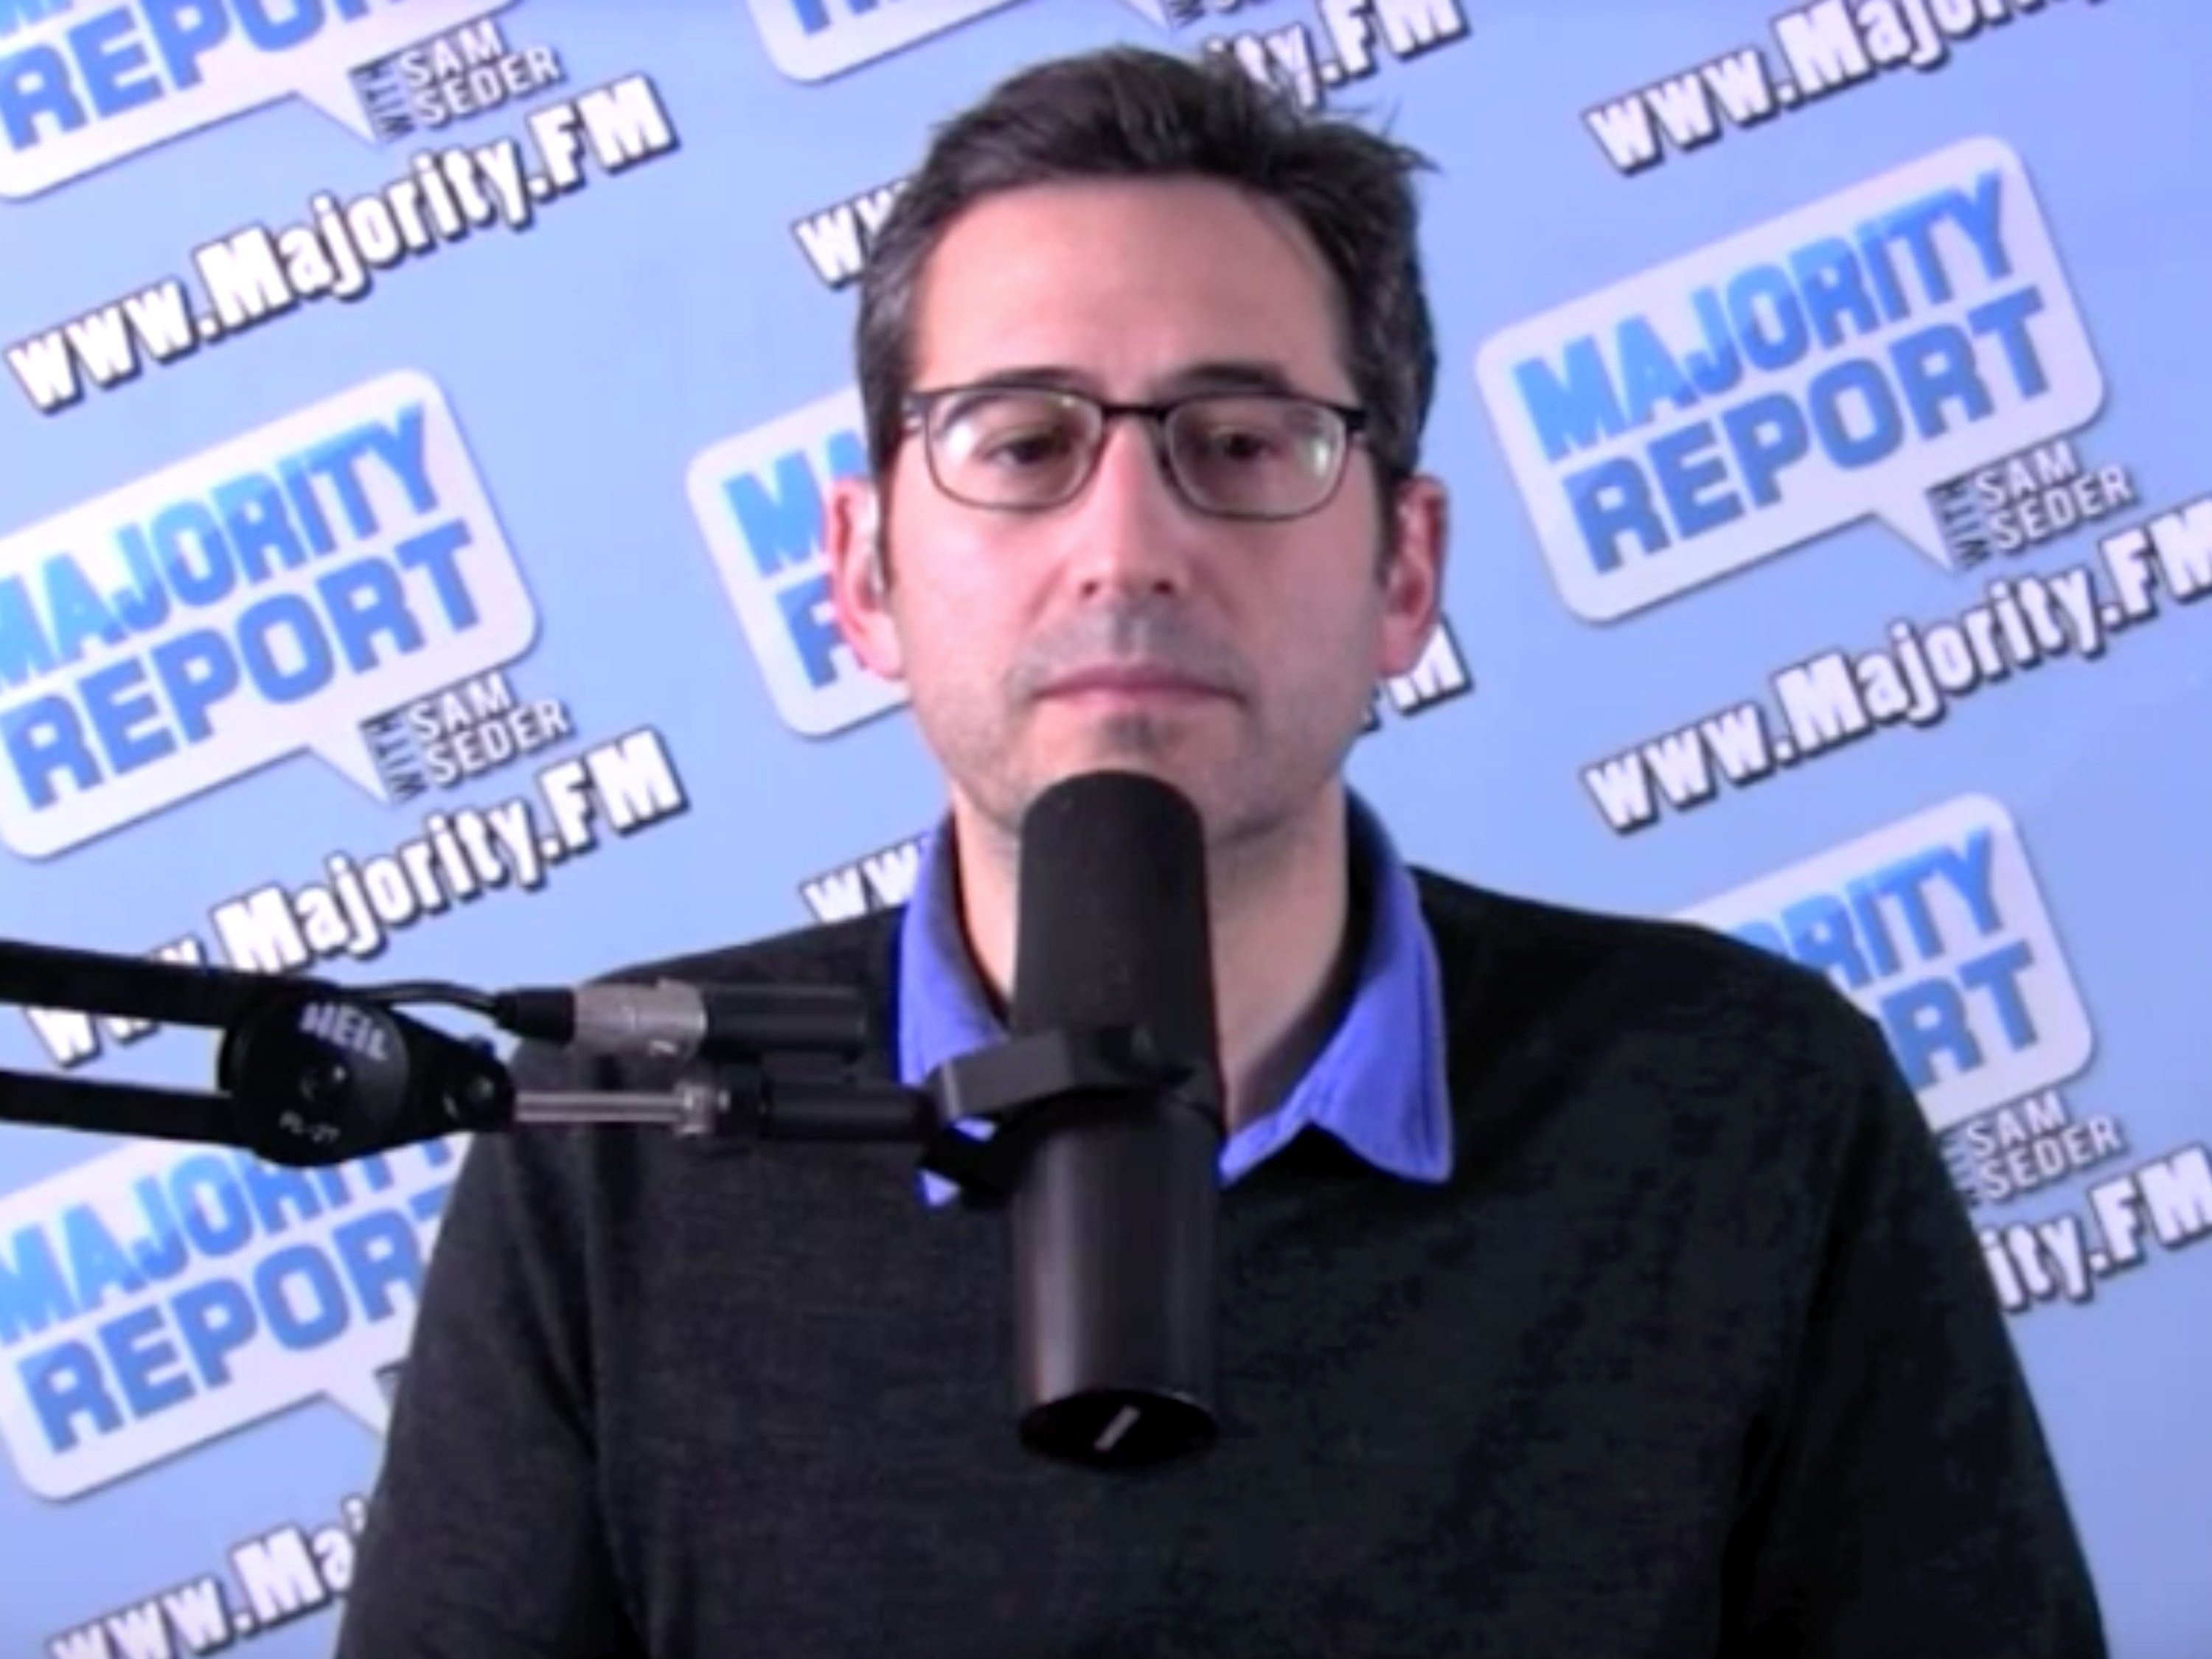 In a dramatic reversal, MSNBC has decided to bring back Sam Seder as a contributor, days after the two sides parted ways over an old tweet of Seder's that had drawn right-wing criticism.